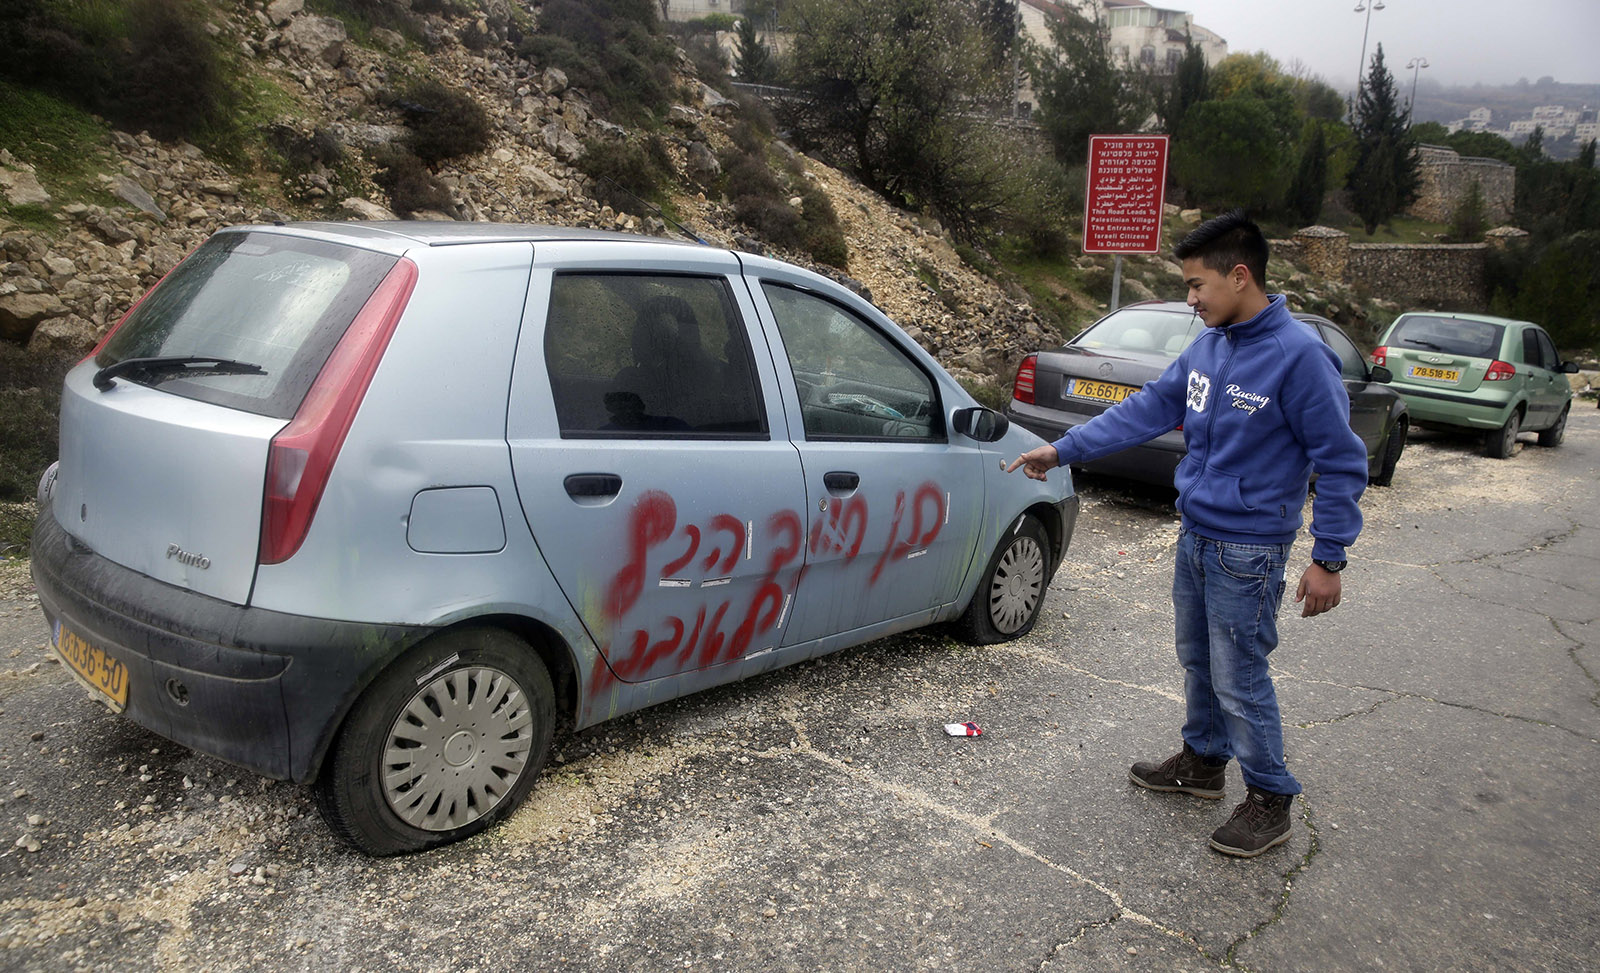 A Palestinian boy pointing to a car vandalized and daubed with racist slogans by Israeli settlers in Beit Iksa, a West Bank village near Jerusalem, January 17, 2018